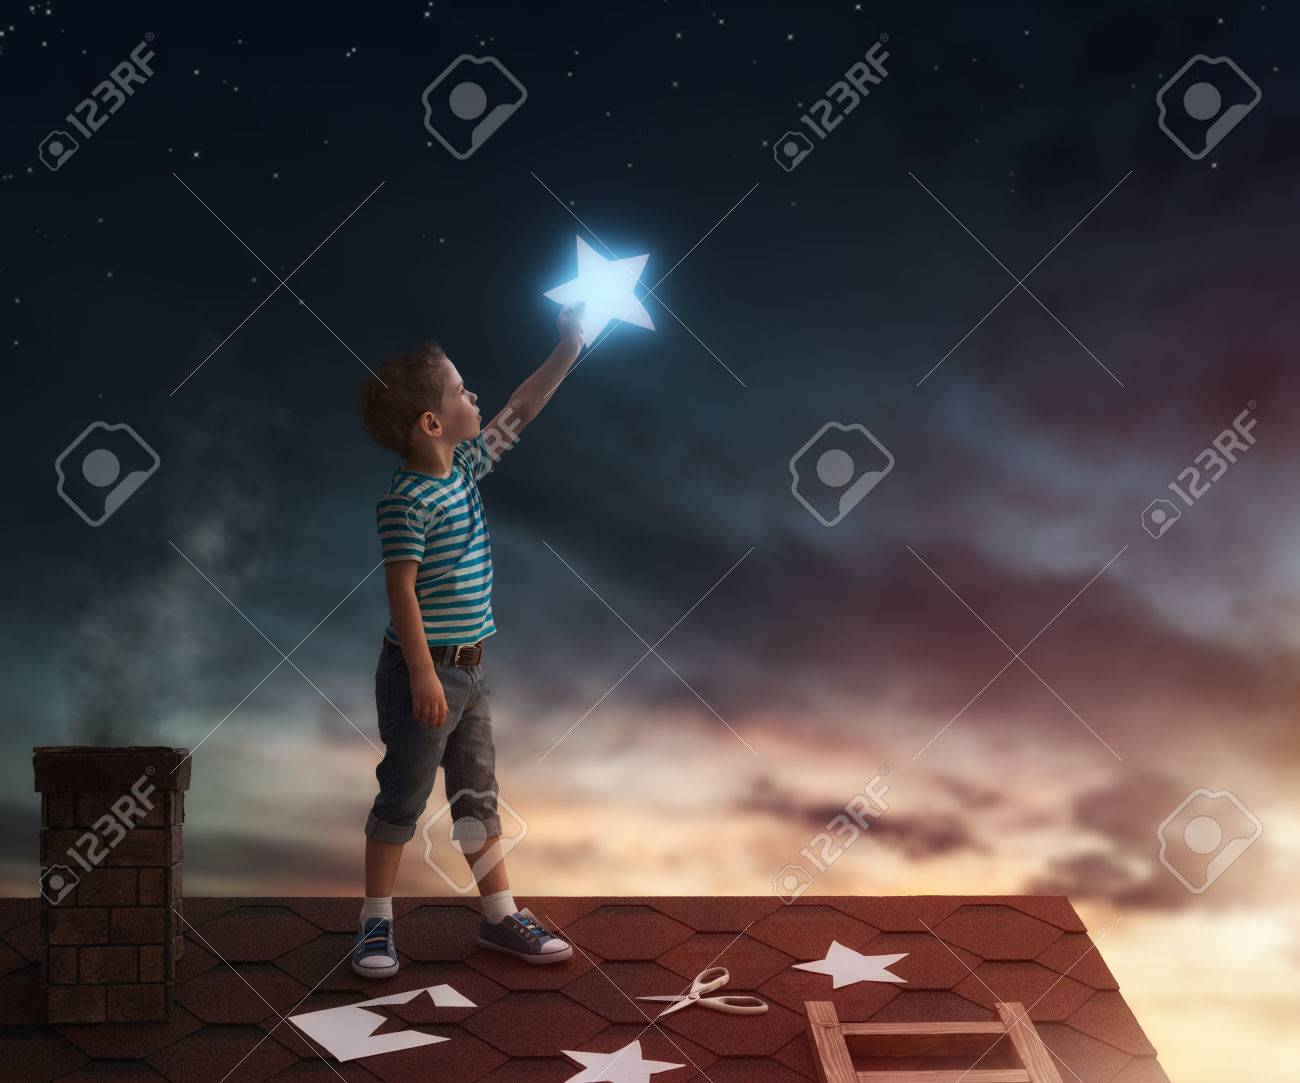 Fairy tale! The child hanging the stars in the sky. Boy on the roof cuts out stars. - 54723668